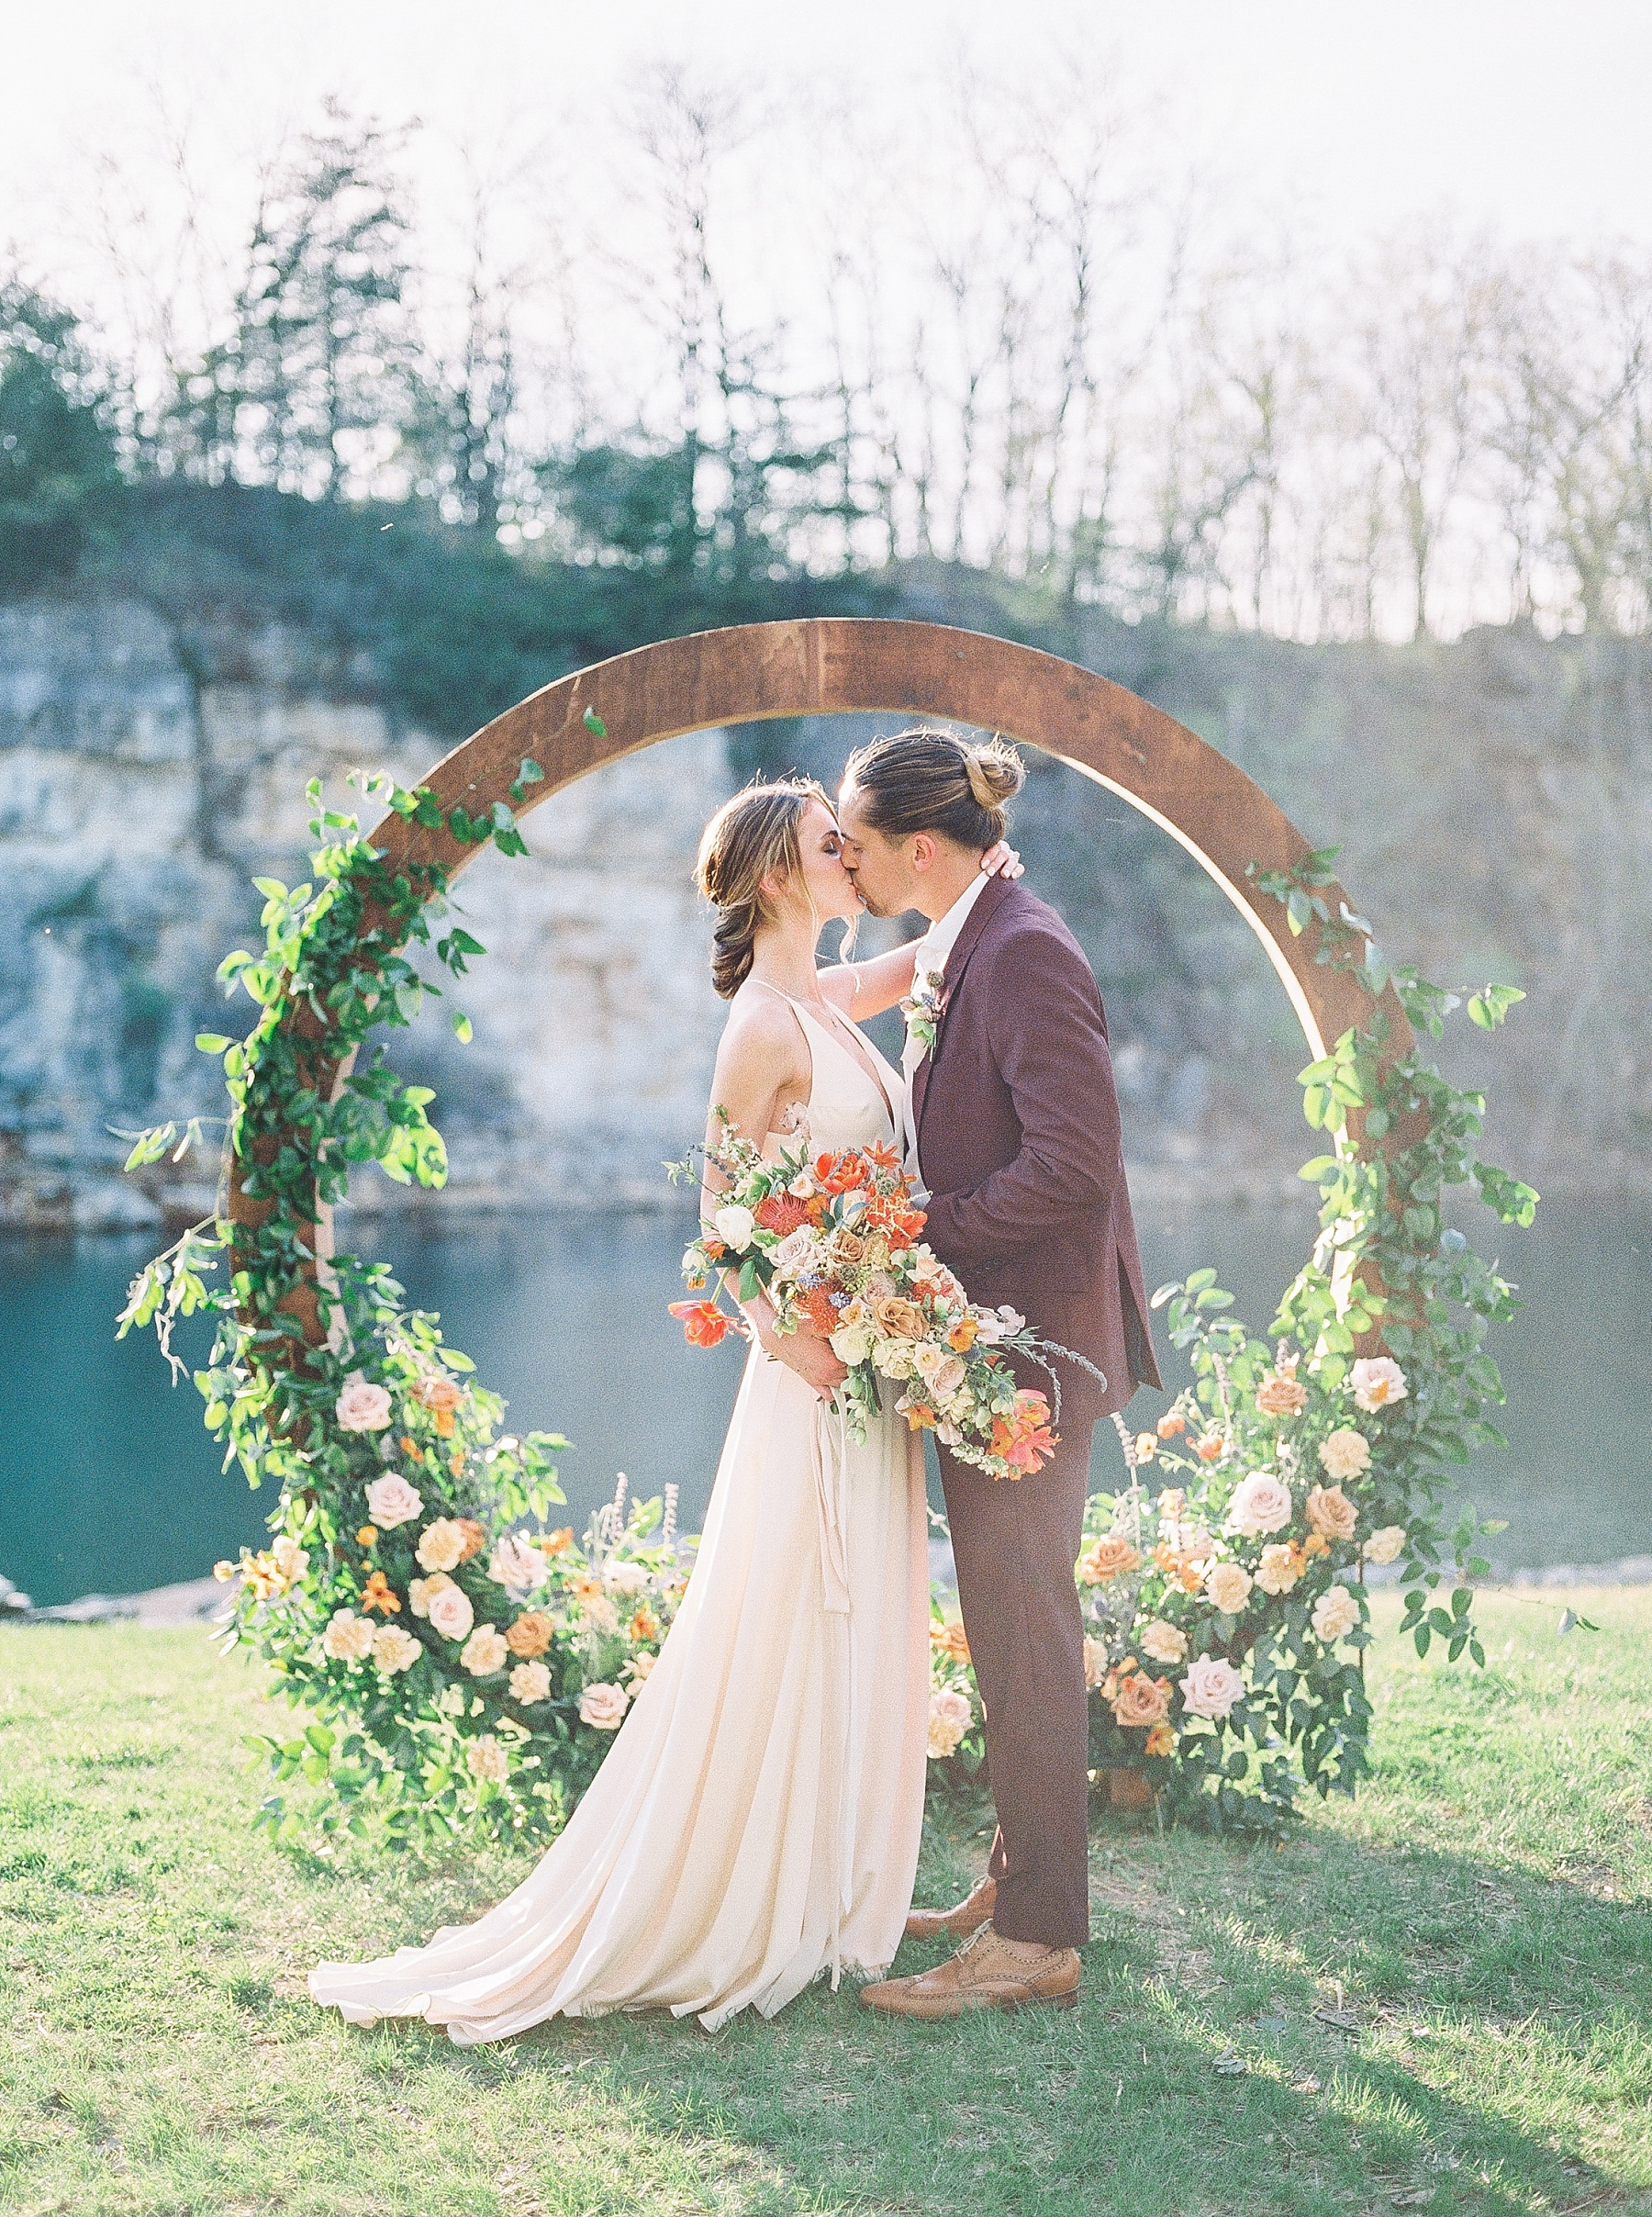 Intimate Spanish and French Inspired Destination Wedding with Lakeside Dinner Party at Dusk at Wildcliff by Kelsi Kliethermes Photography Best Missouri and Maui Wedding Photographer_0081.jpg